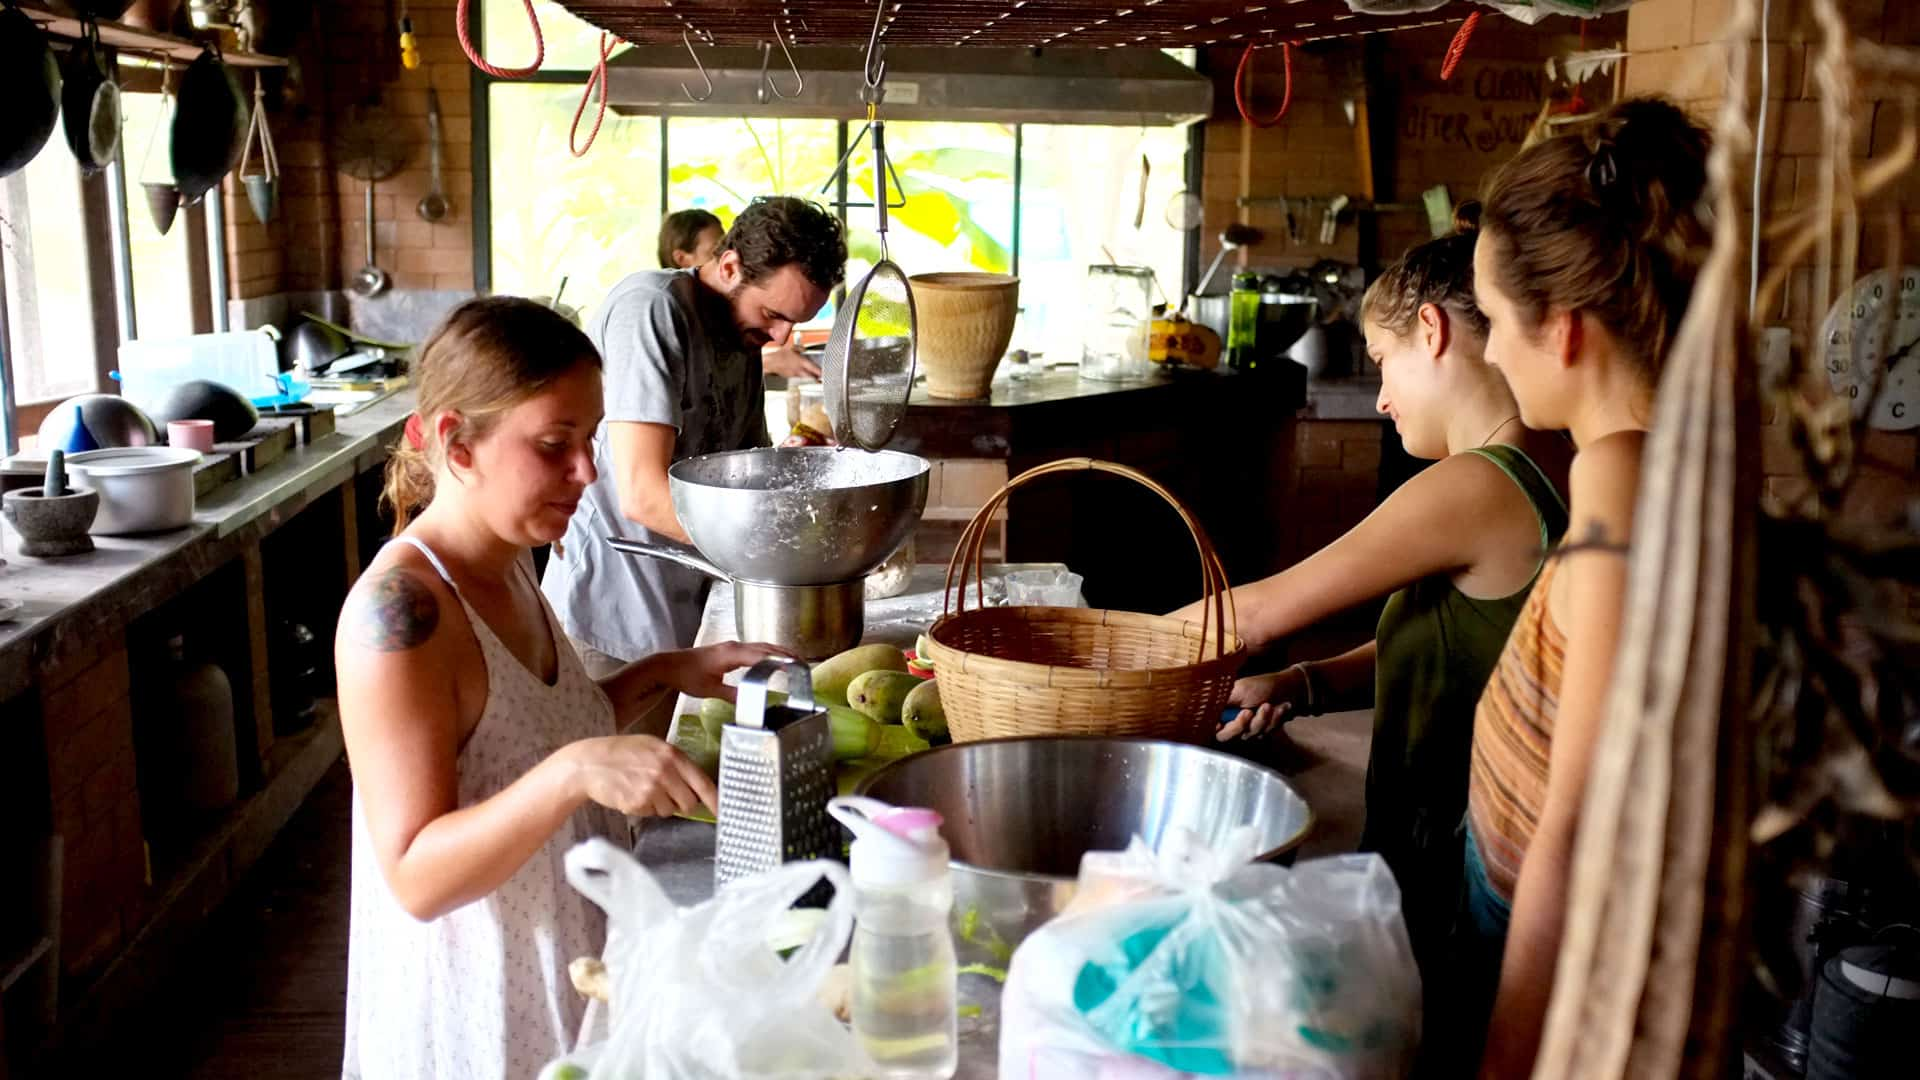 Permaculture students preparing food in the communal kitchen